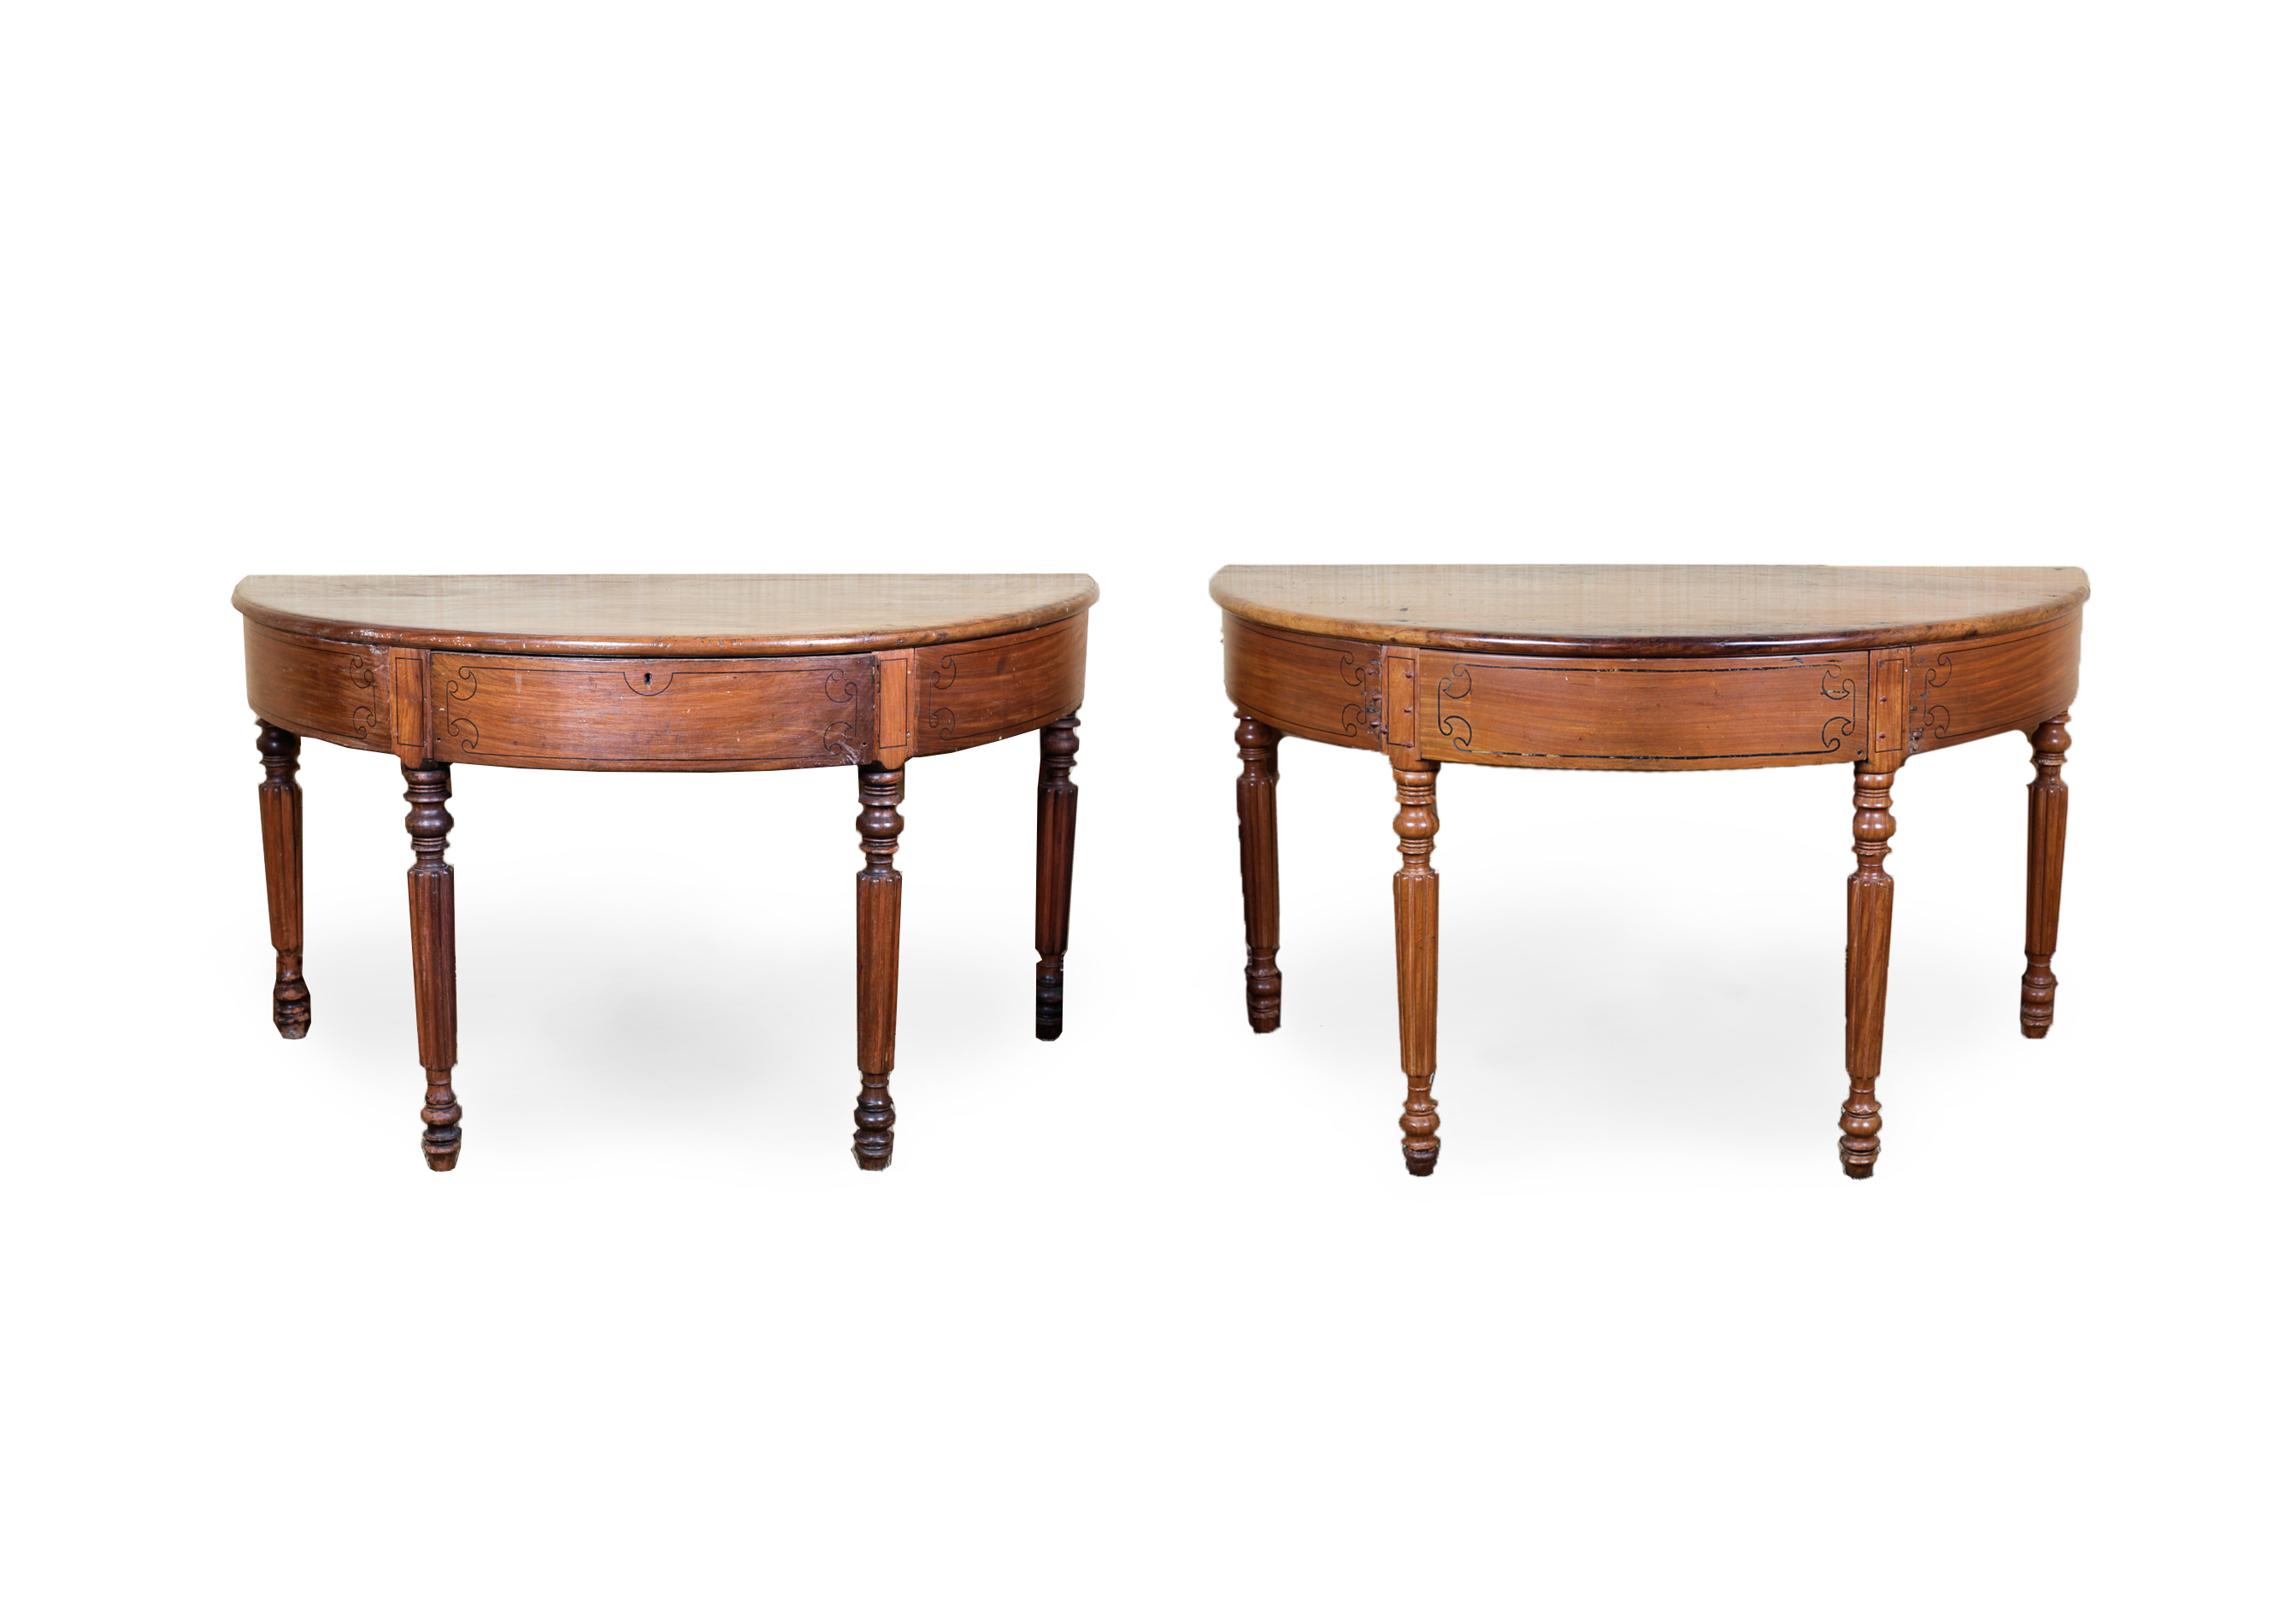 Pair of Antique Demilune Tables : EBTH